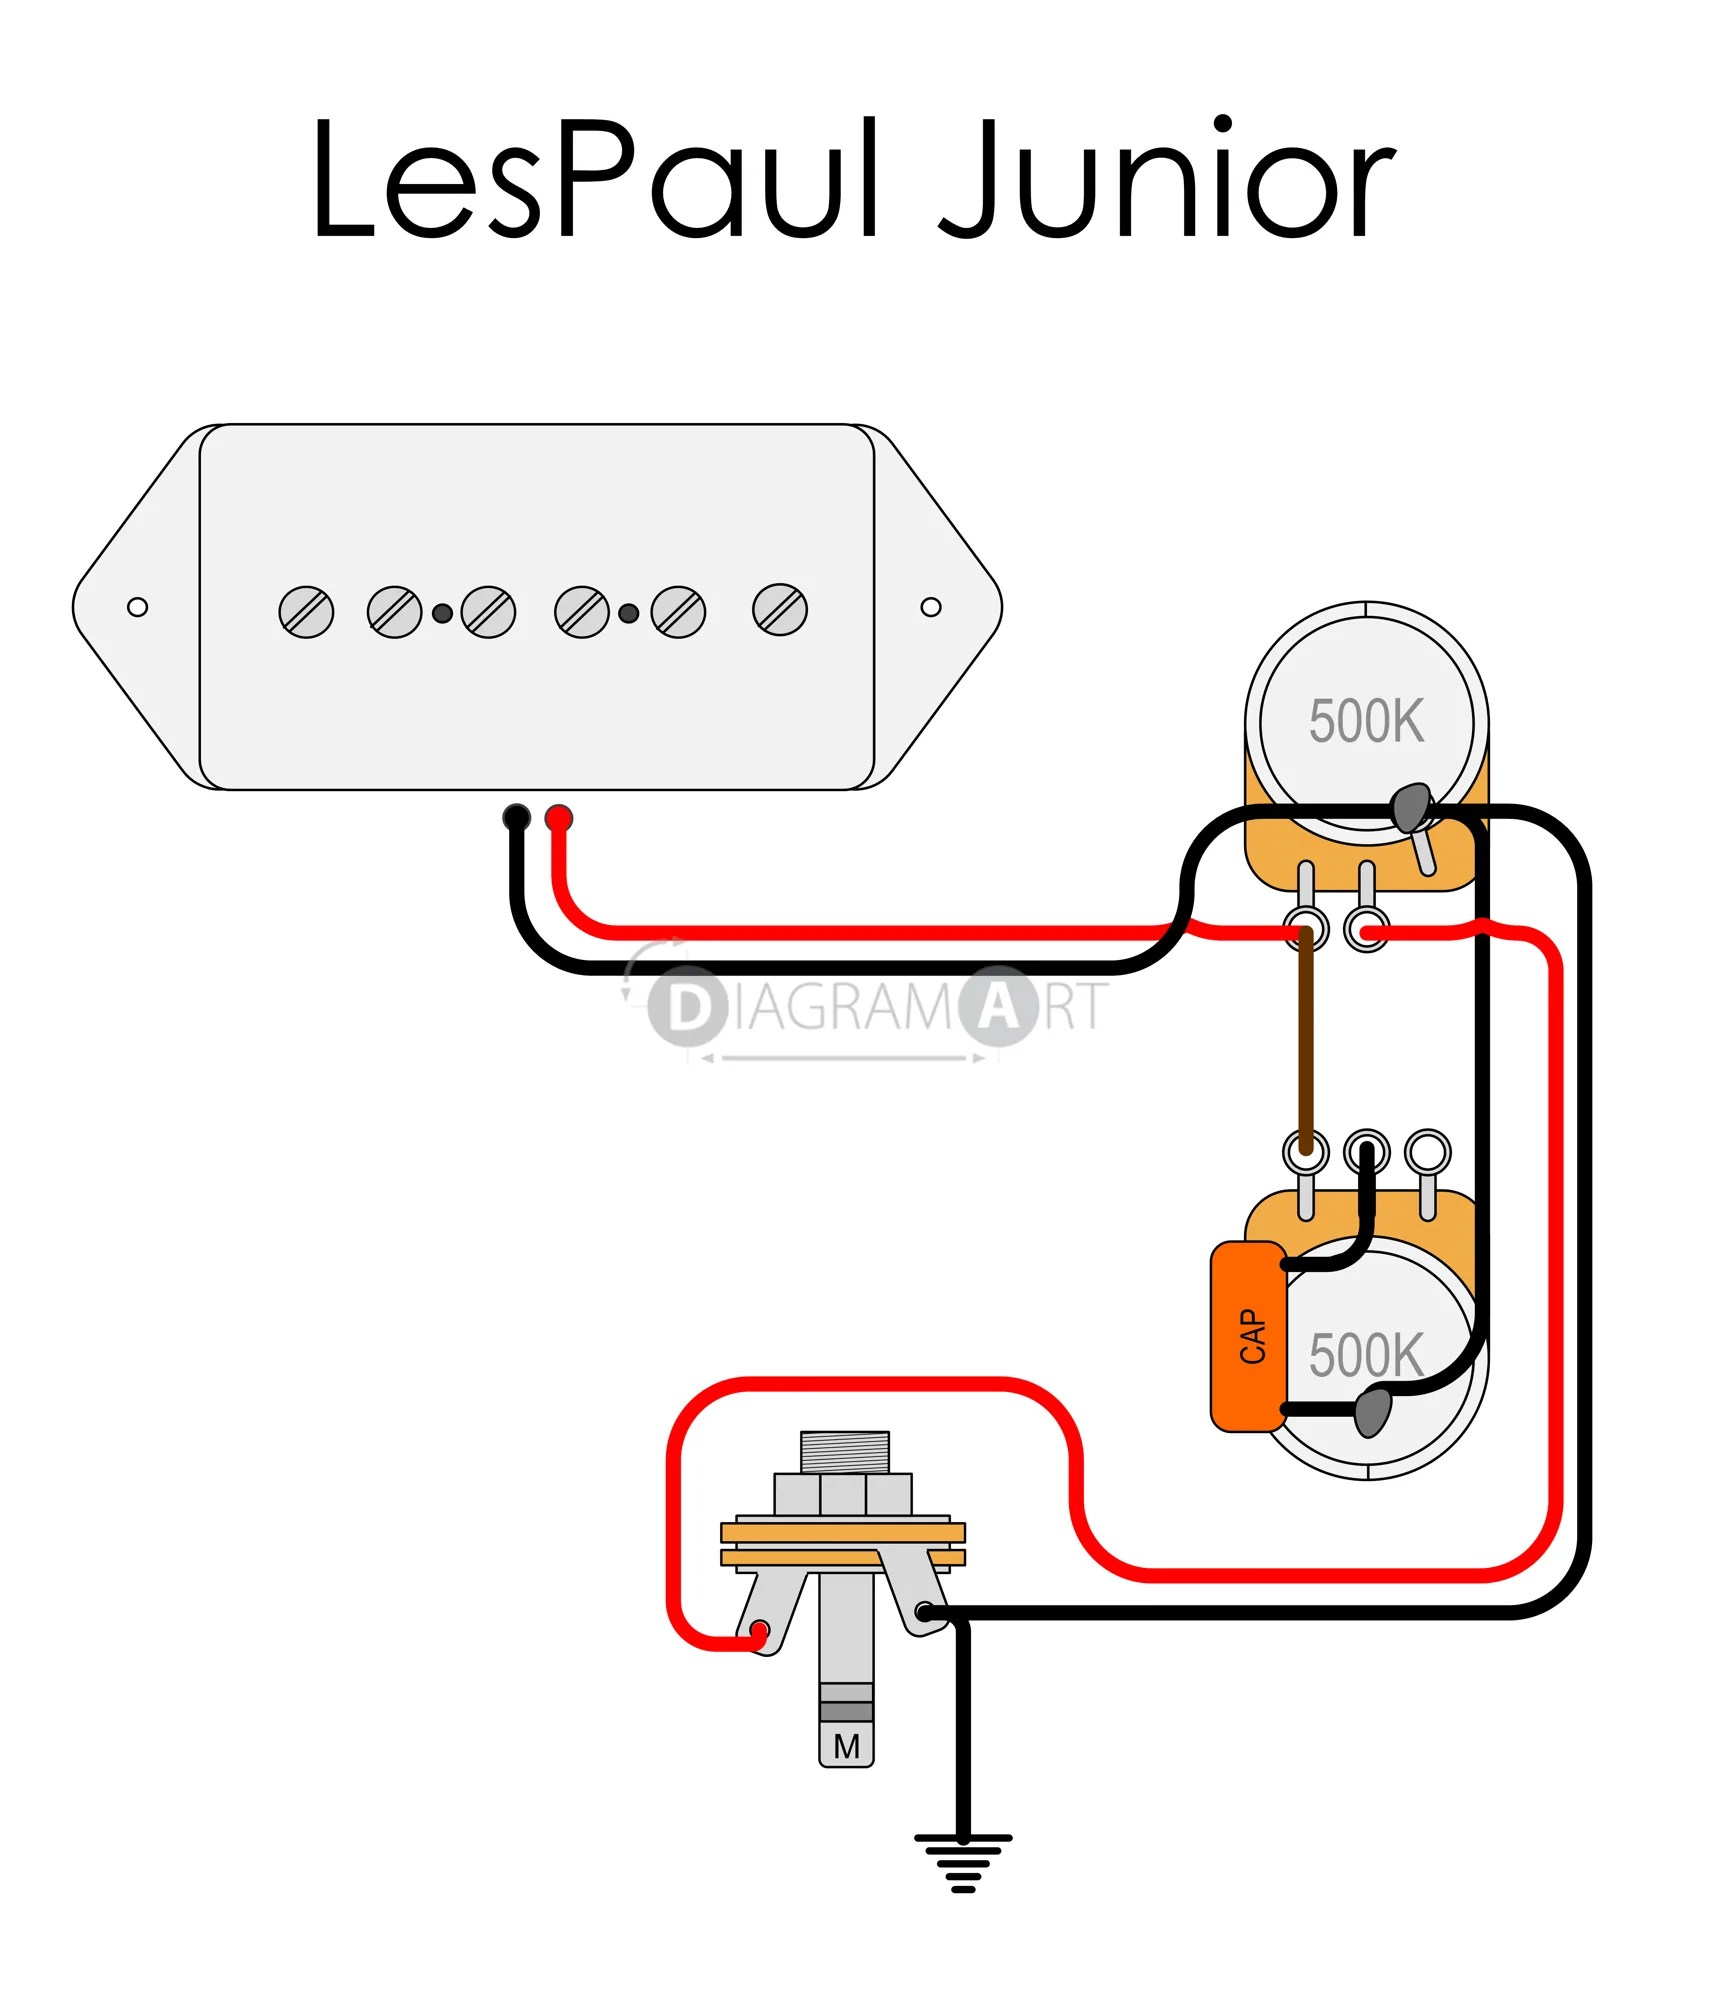 small resolution of guitar wiring circuit diagram wiring diagram database the guitar wiring blog diagrams and tips gibson les source gibson les paul toggle switch